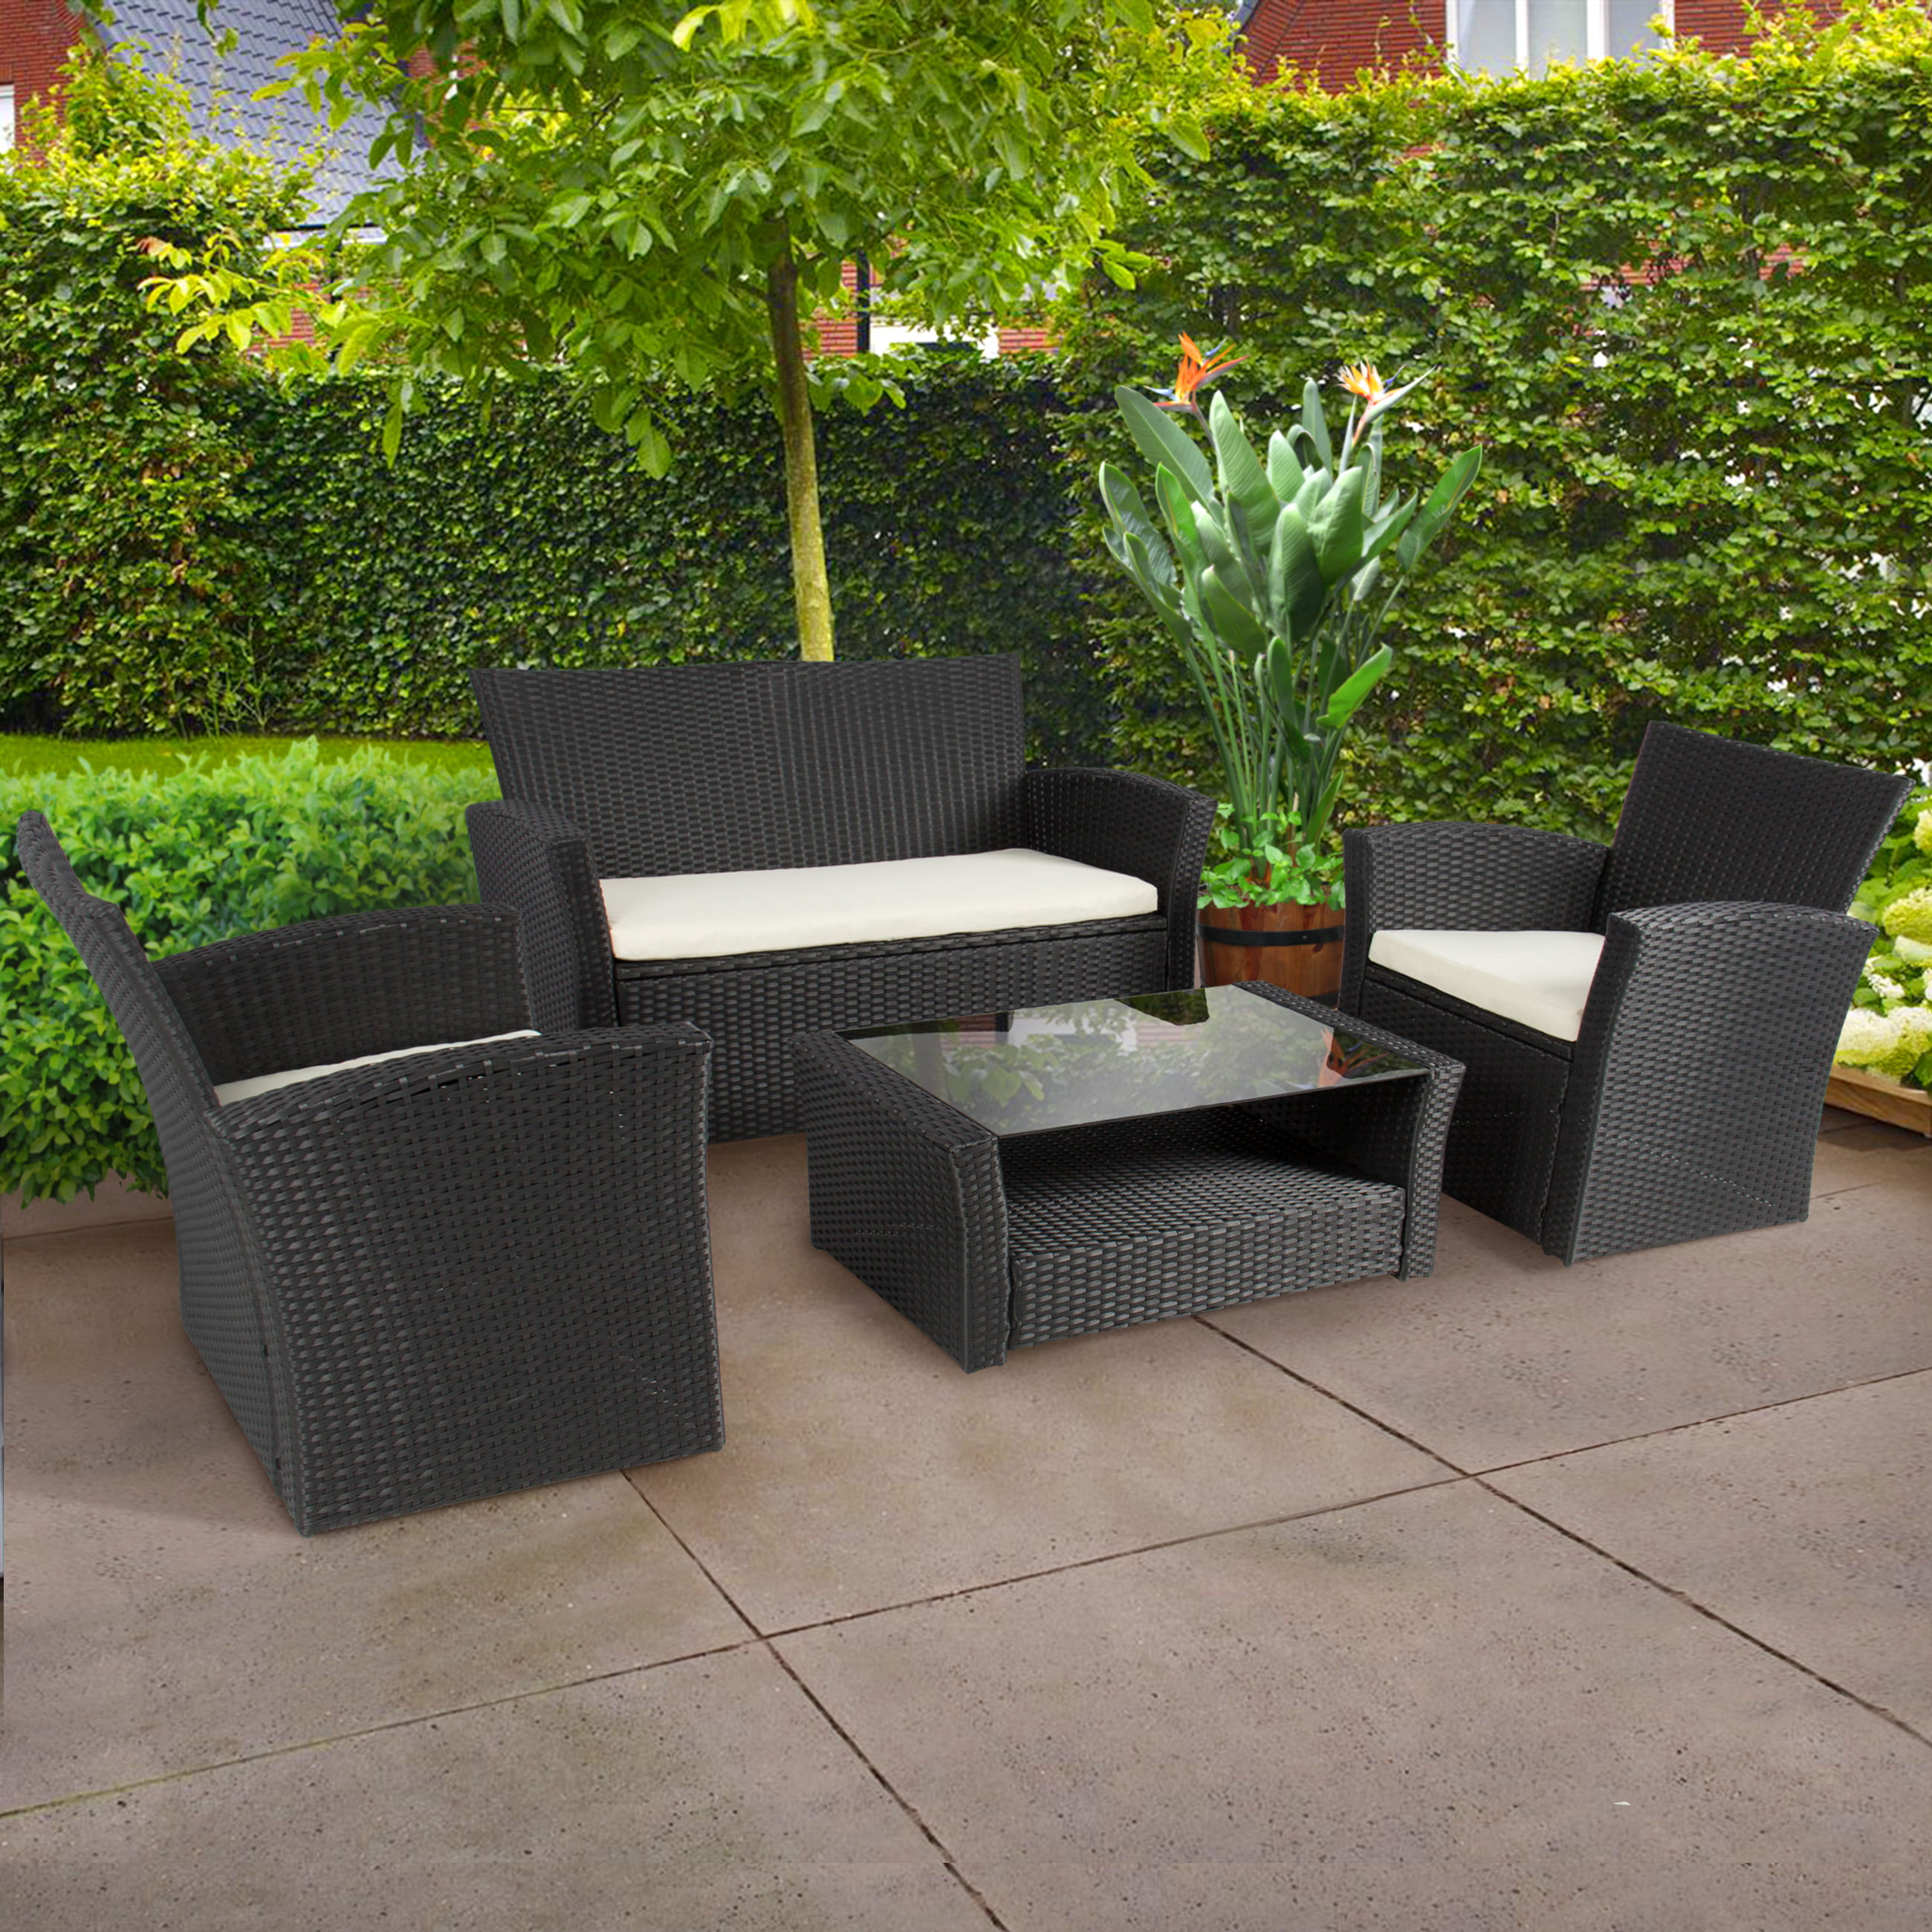 Garden Furniture Sofa Sets 4pc outdoor patio garden furniture wicker rattan sofa set black